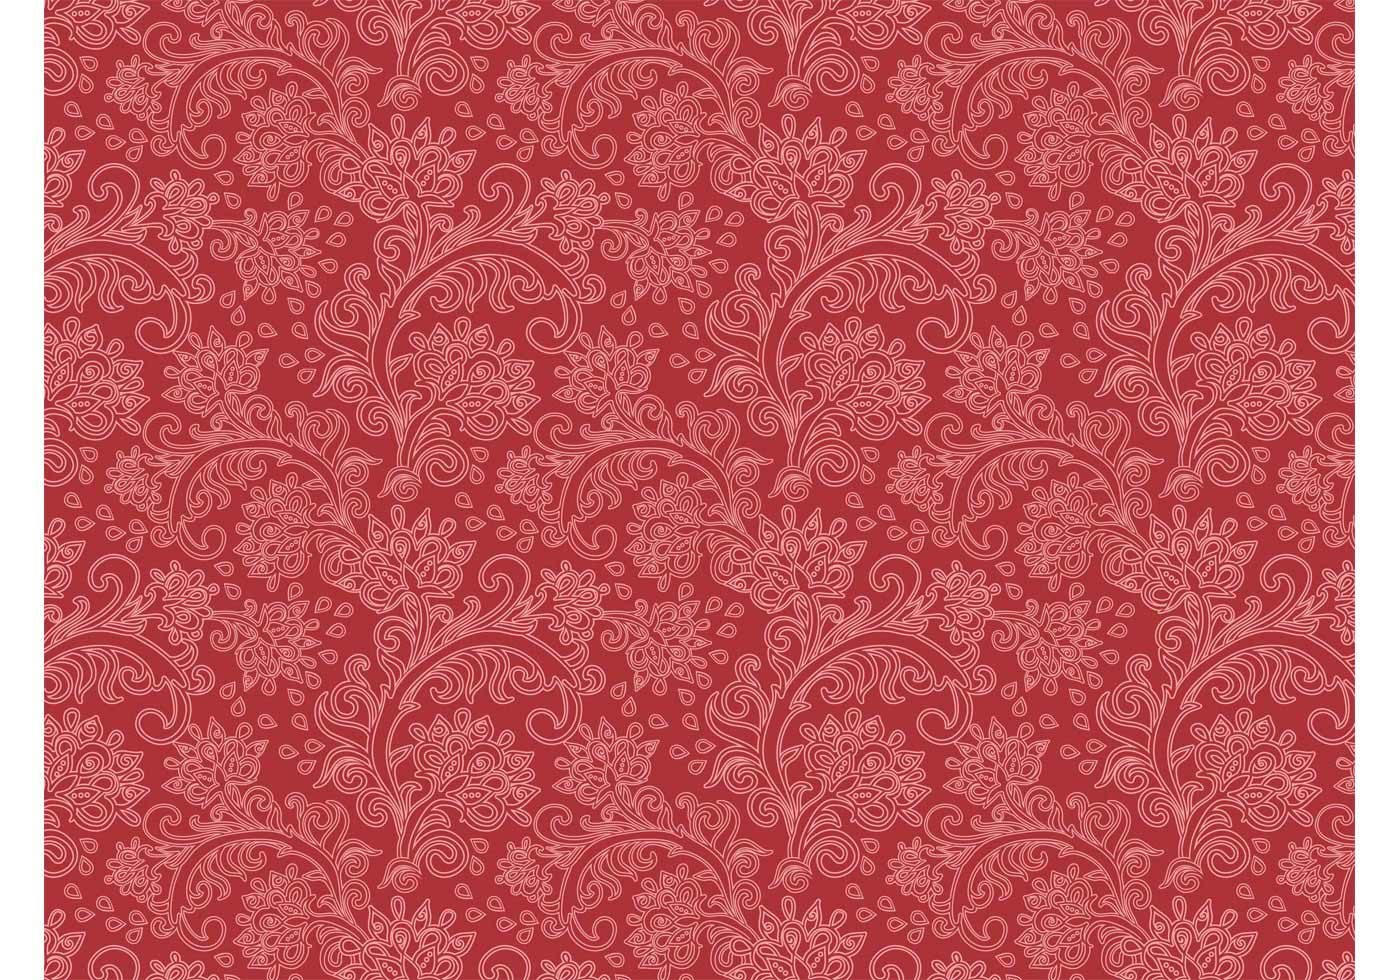 Vintage Floral Pattern Vector - Download Free Vector Art ...